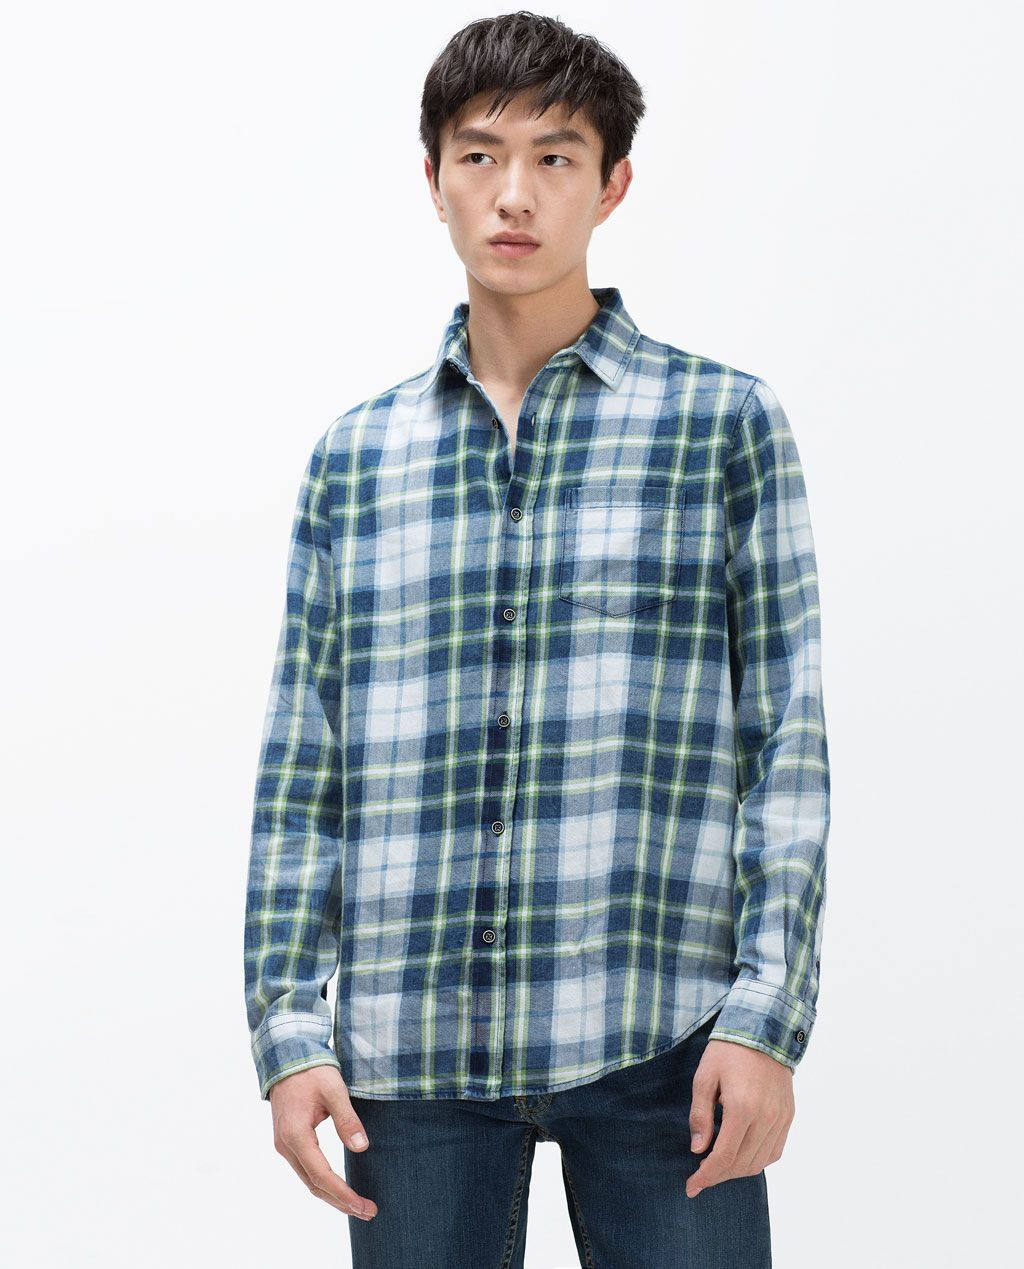 Dress up flannel shirt  Image  of CHECKED SHIRT from Zara  plaid  Pinterest  Shirts